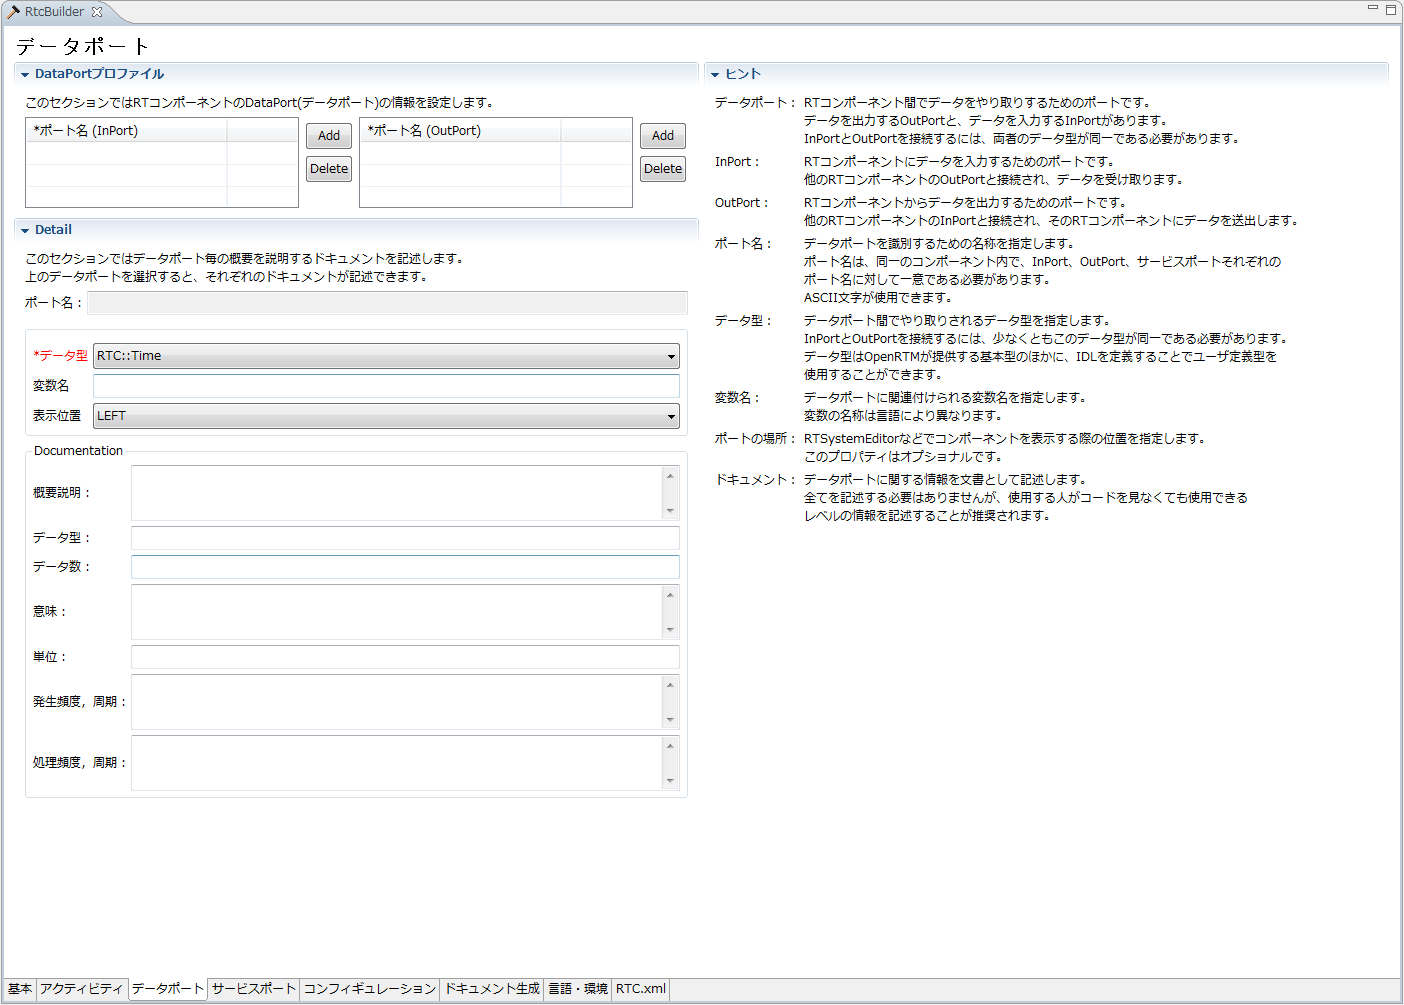 fig3-4InputDataPort_ja.png